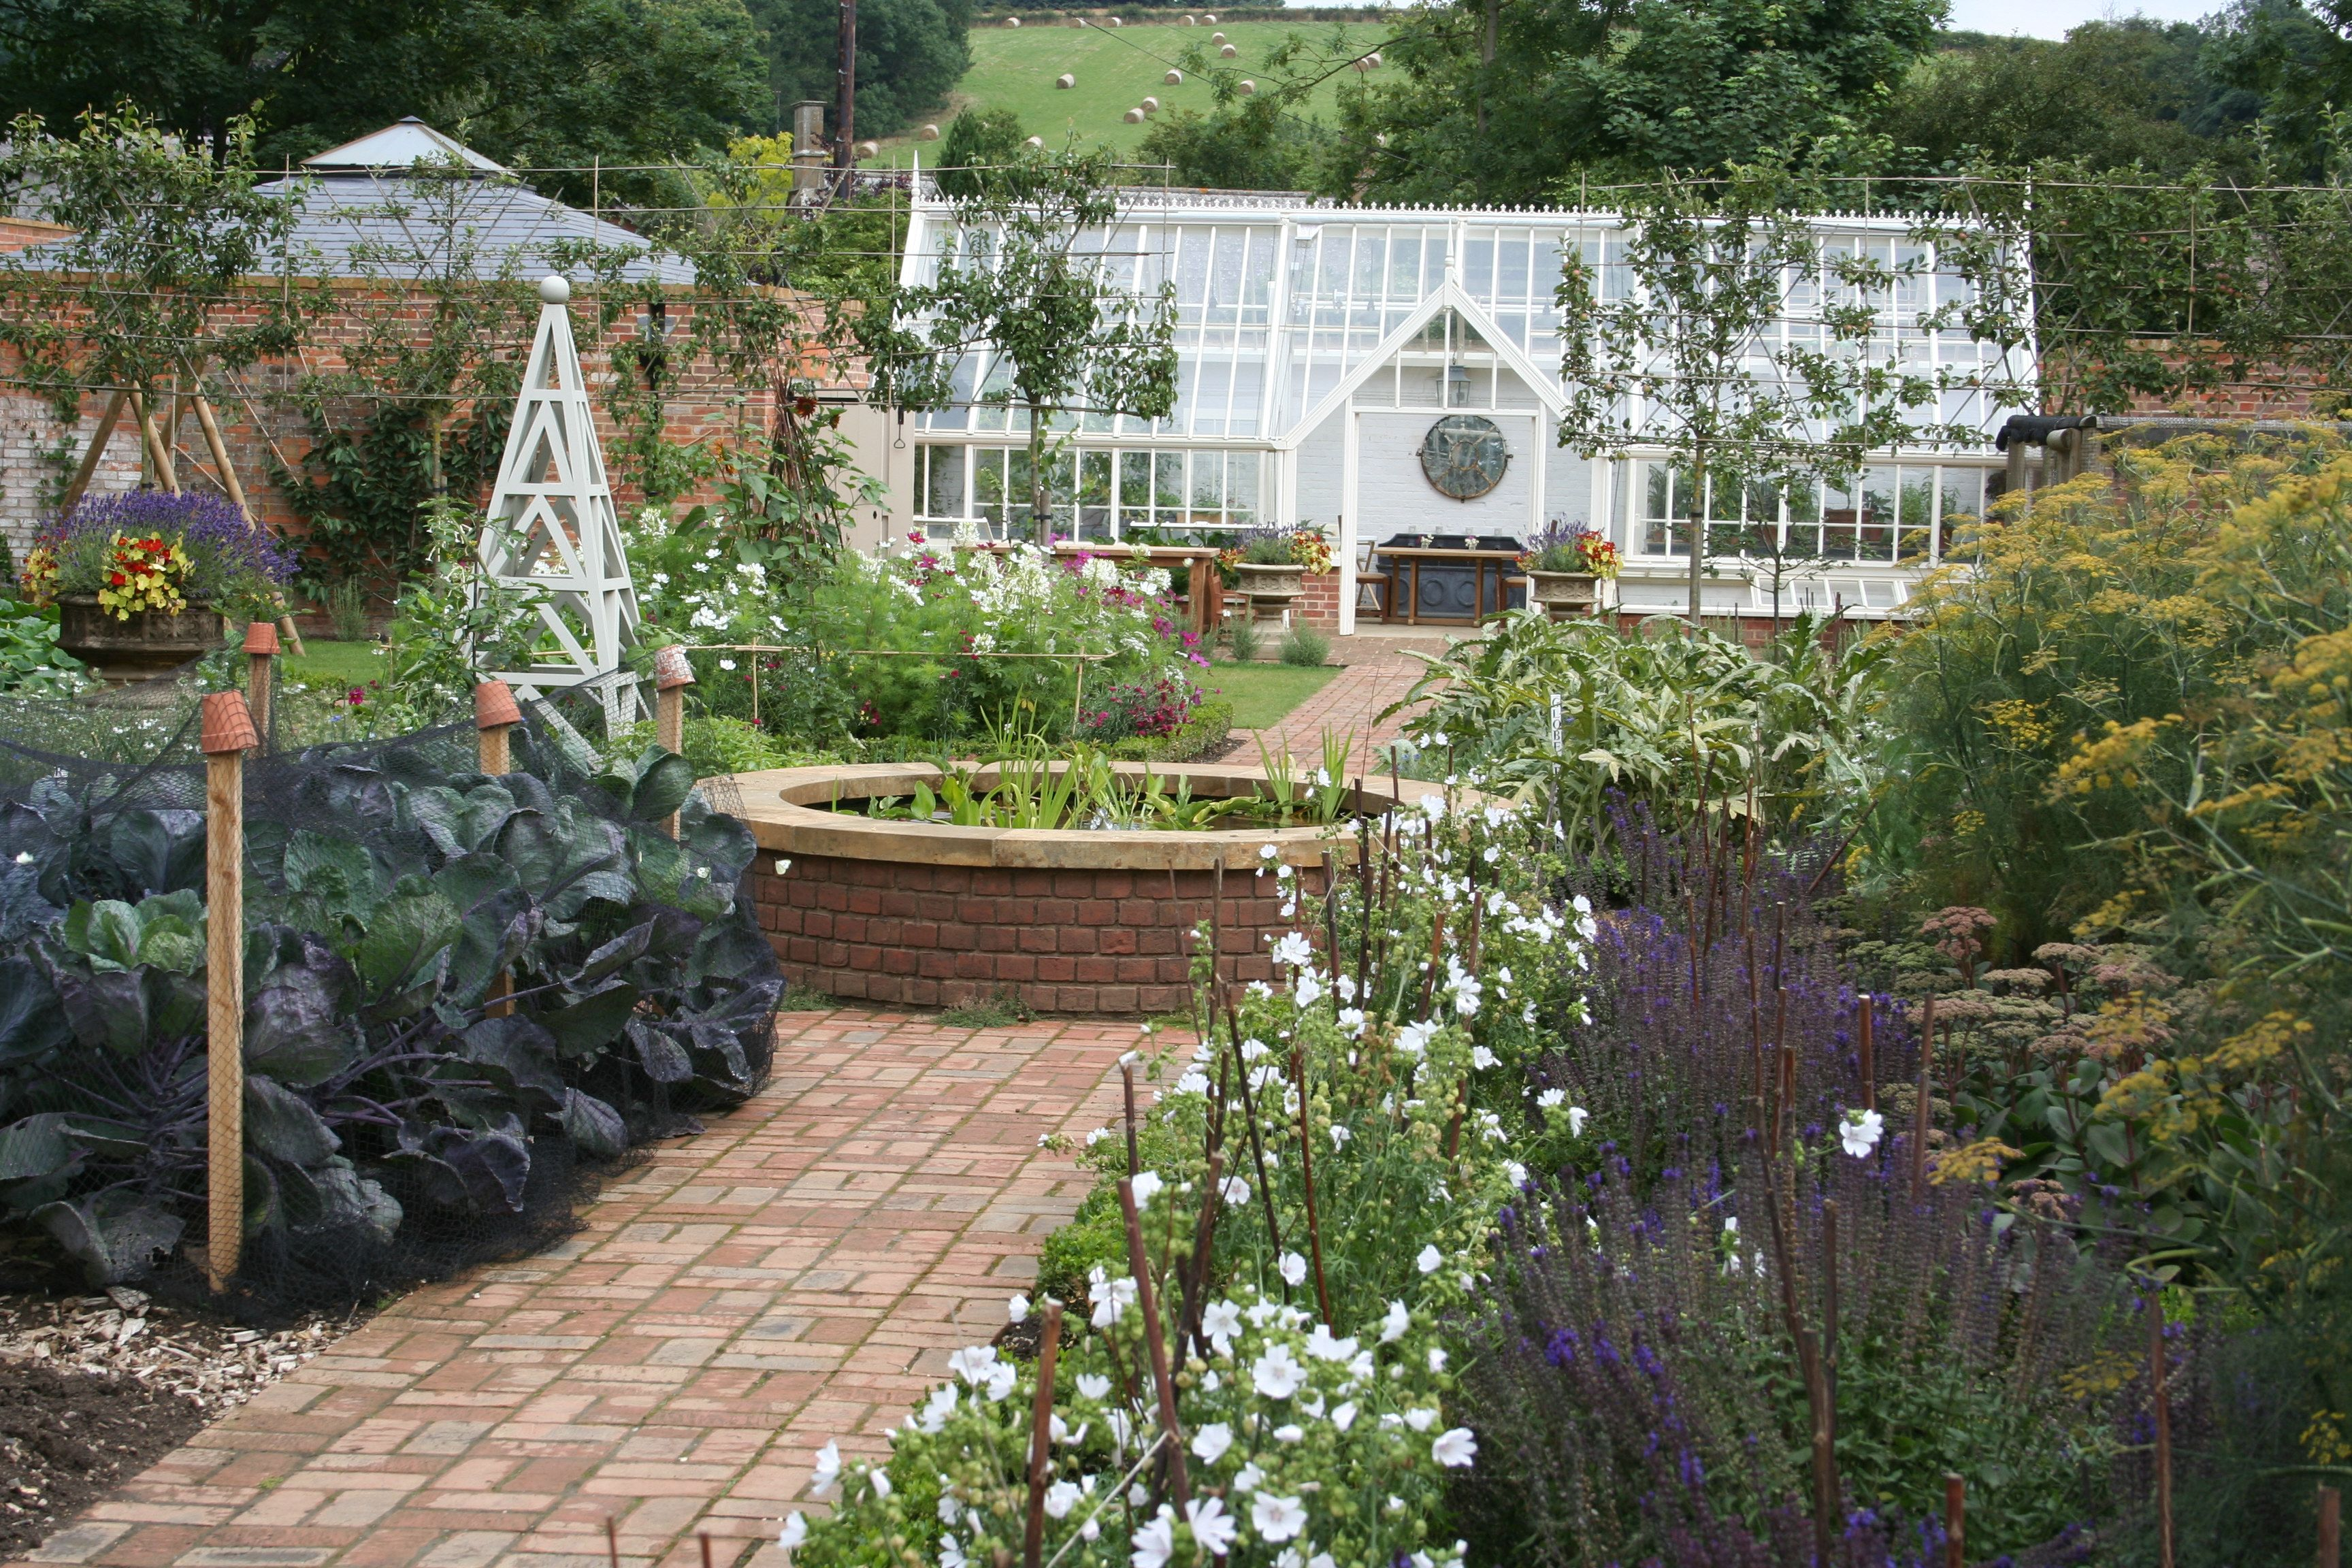 A bespoke greenhouse in a new walled garden. Wonderful dining room in the central area of the greenhouse too.